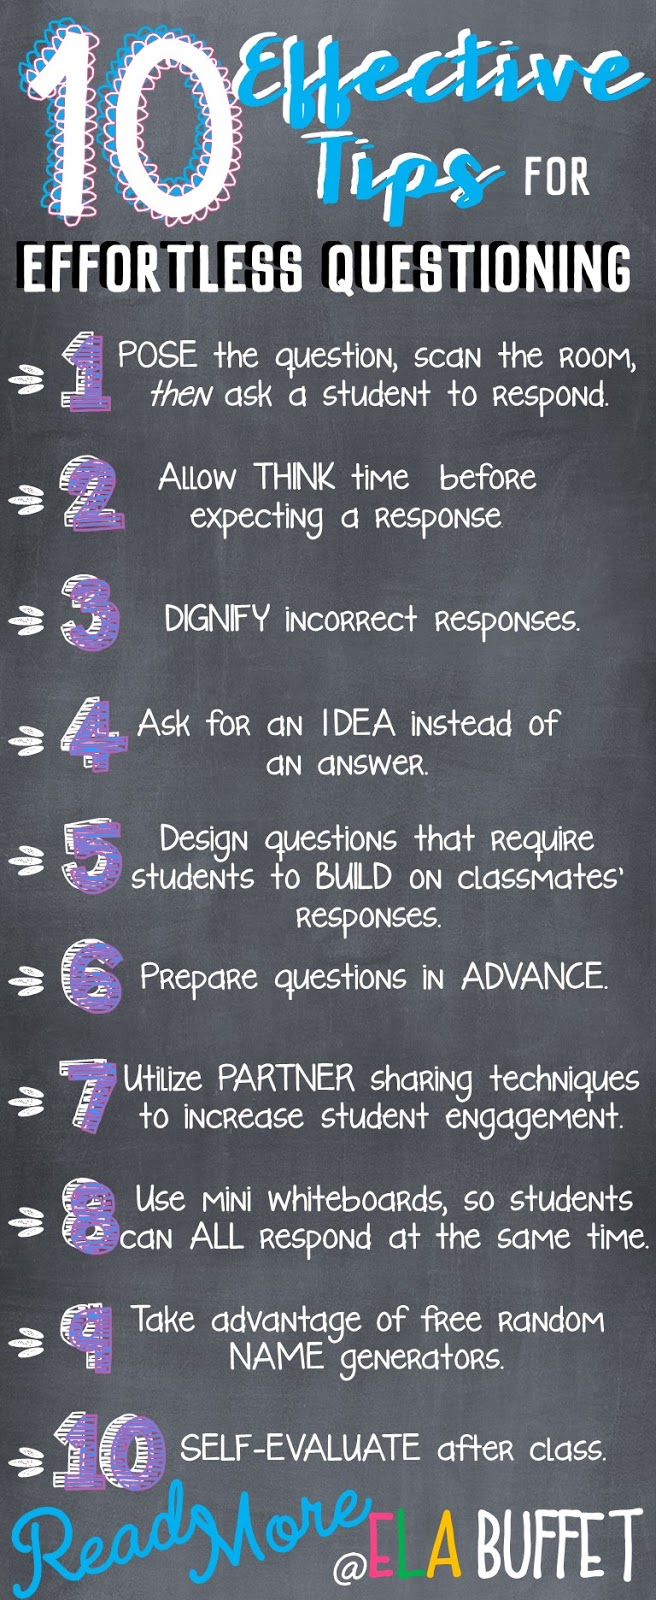 Learning how to ask questions effectively has made a HUGE difference in my class! Read this blogpost to find out how to design questions, promote inquiry, and improve teacher/student relationships in your classroom. Very helpful!